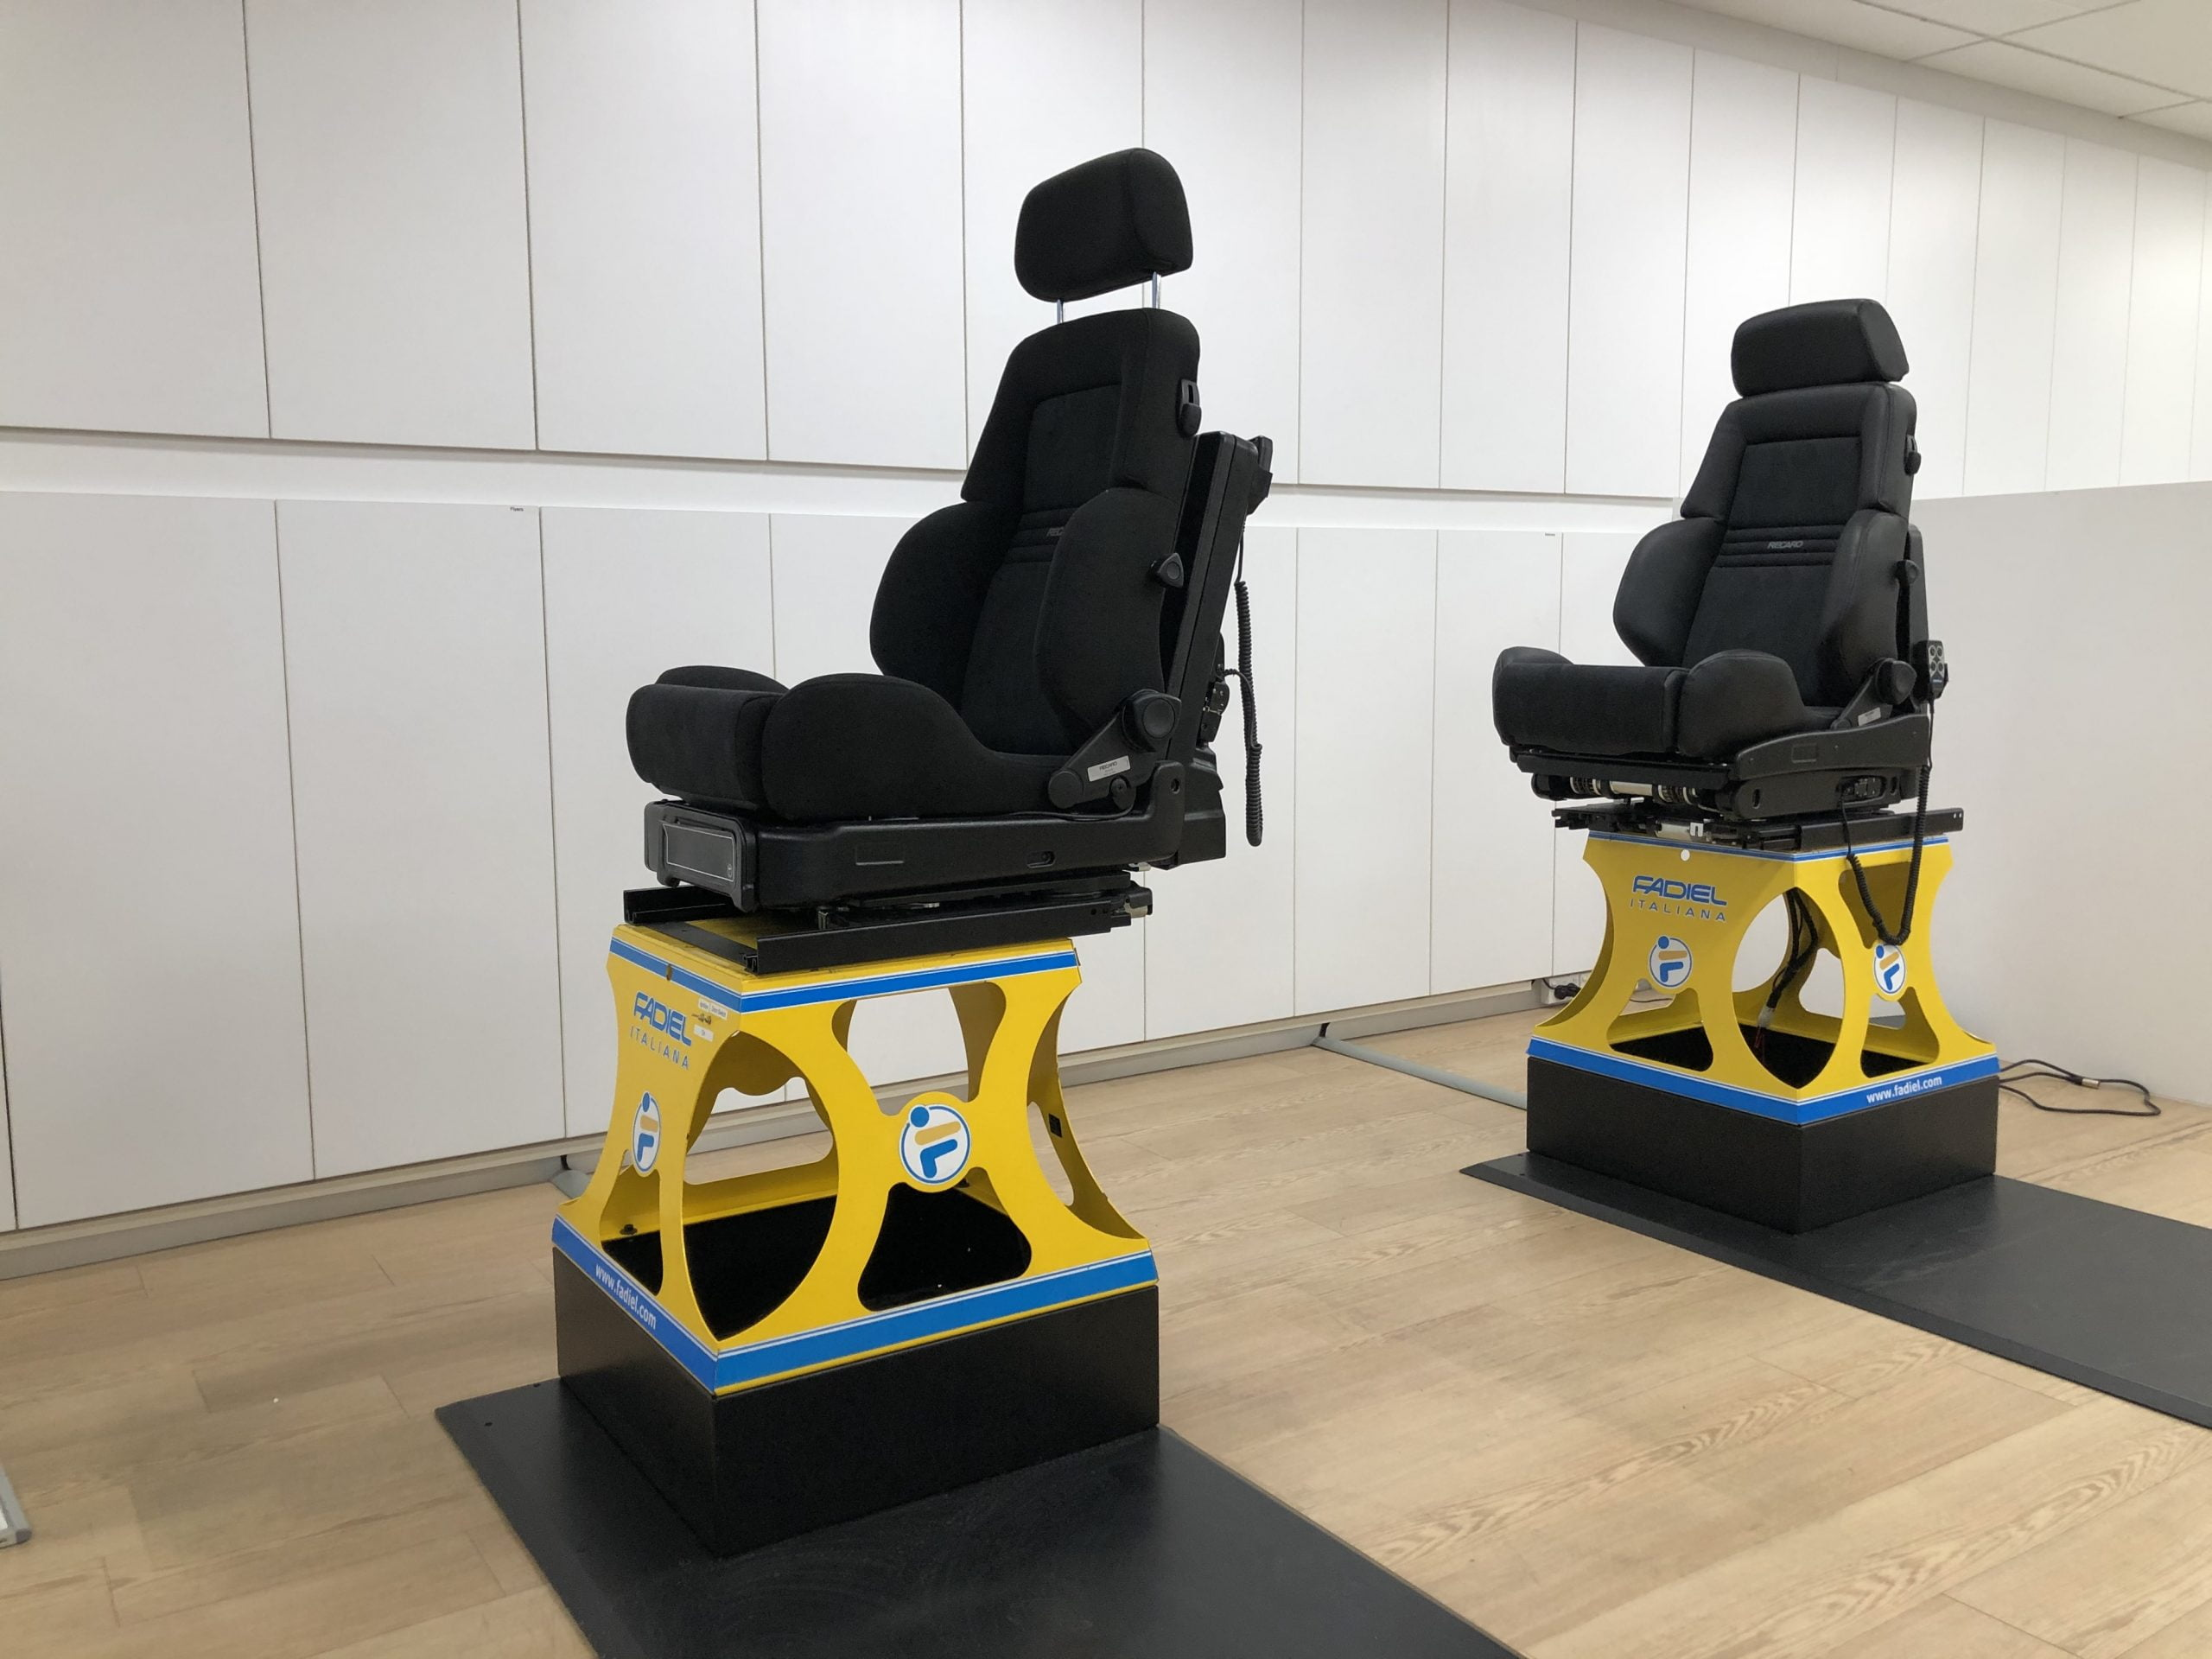 Two Lowering Swivel seats on demo stands. The one on left has reclining ability.